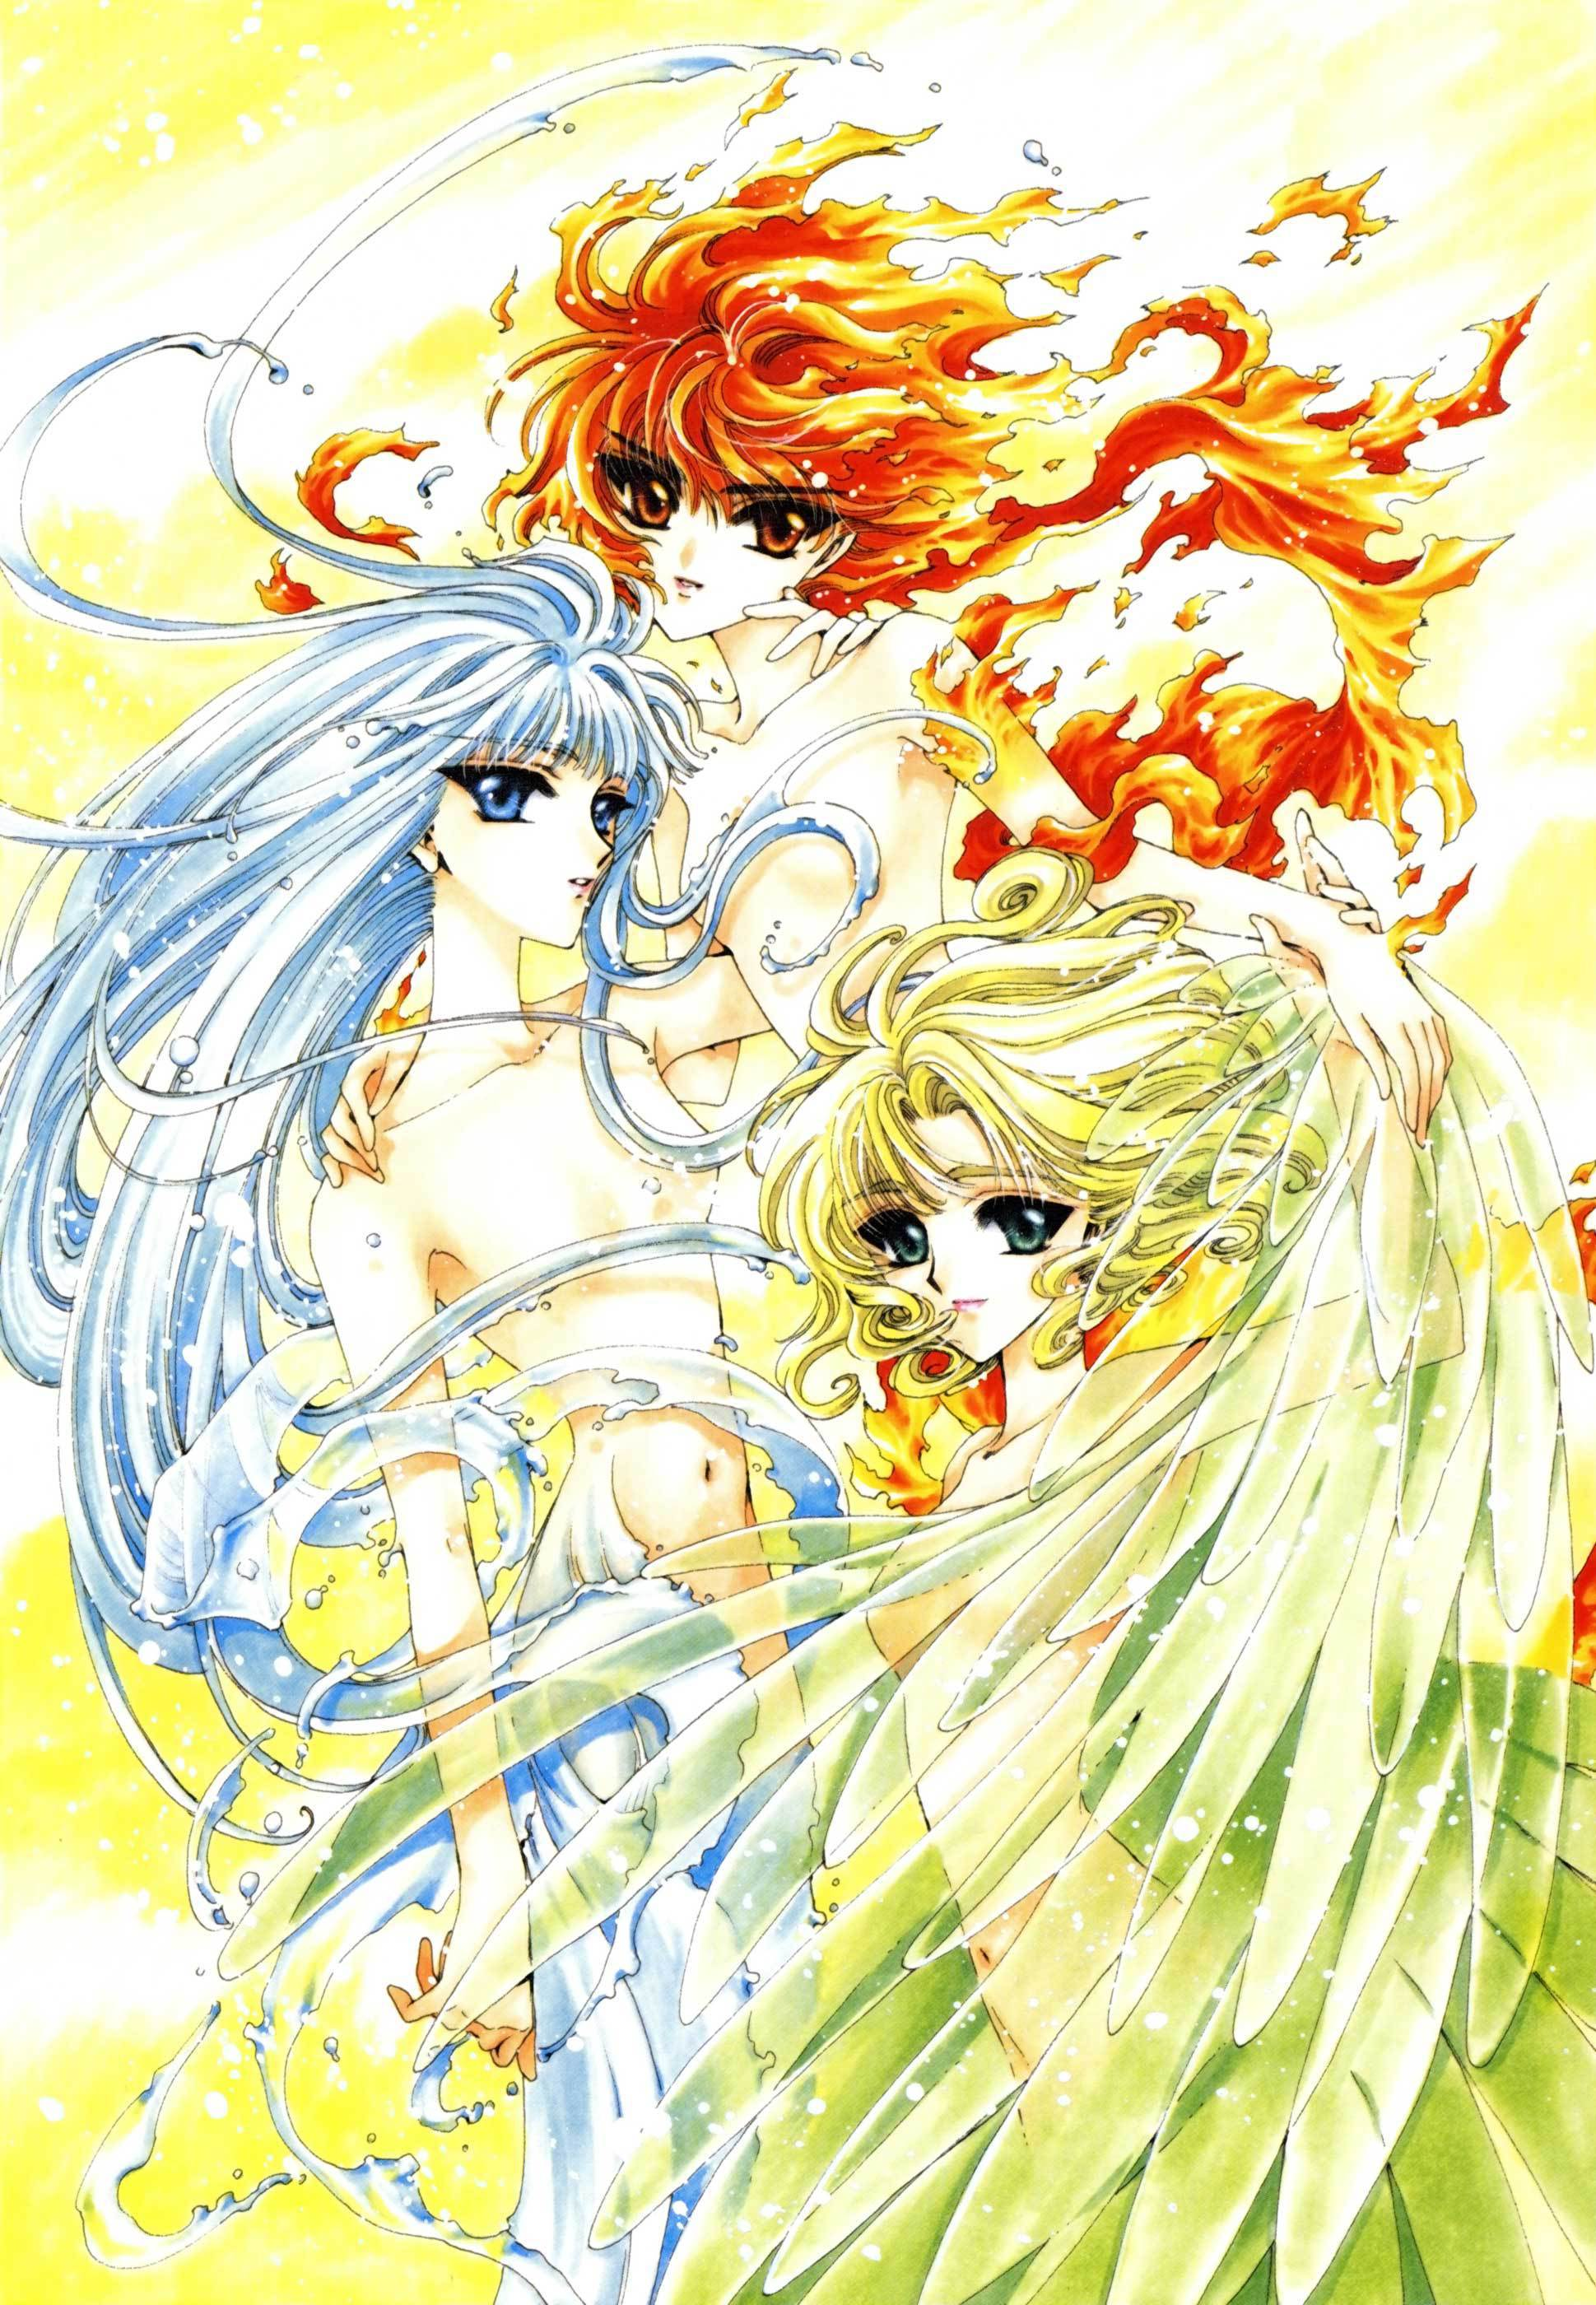 magic knight rayearth Anime HD Wallpaper